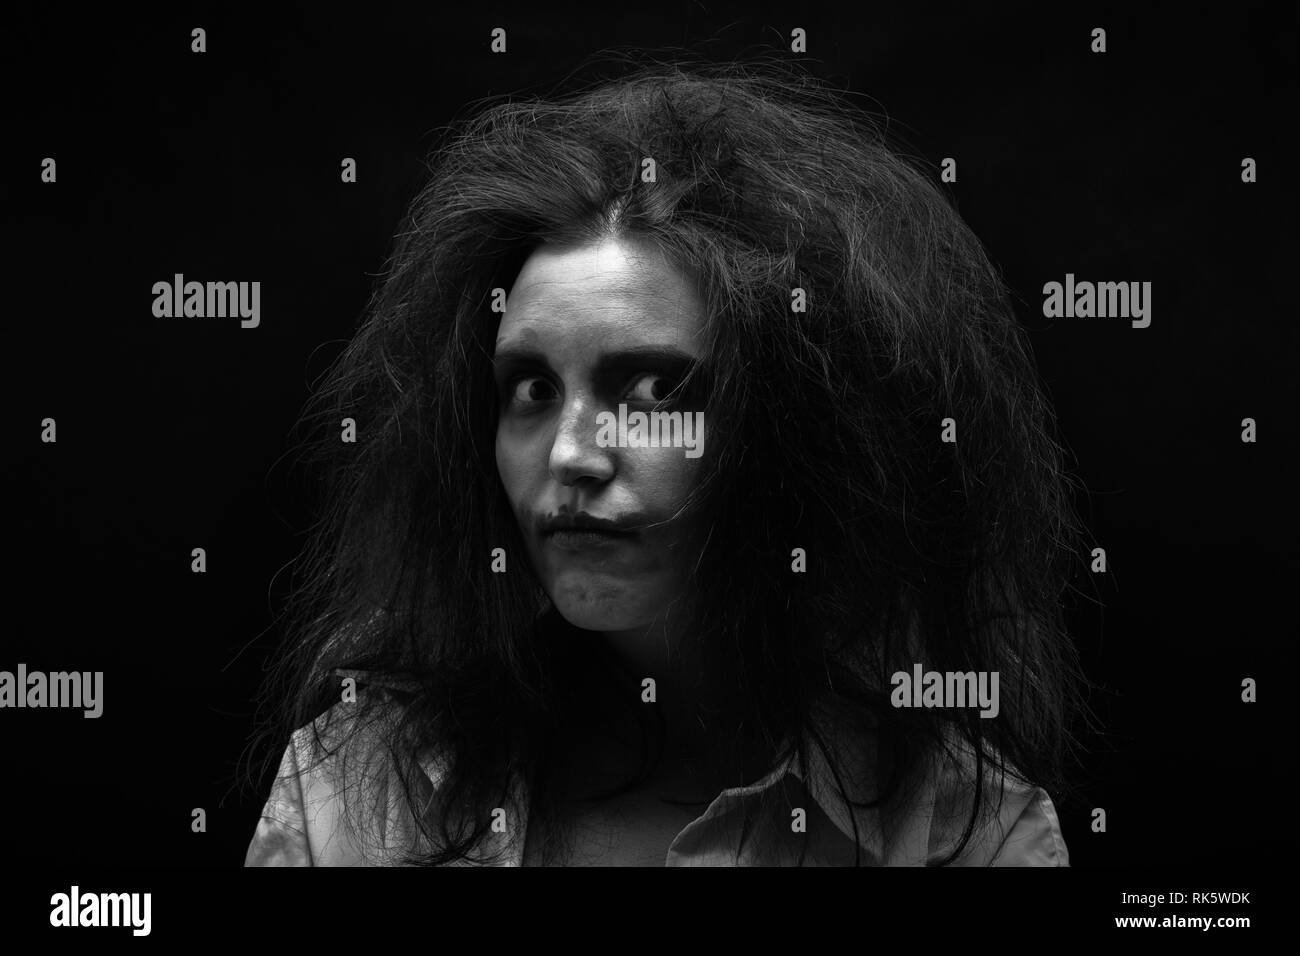 fun crazy young woman with fluffy hair on black background make shy grimace, monochrome - Stock Image